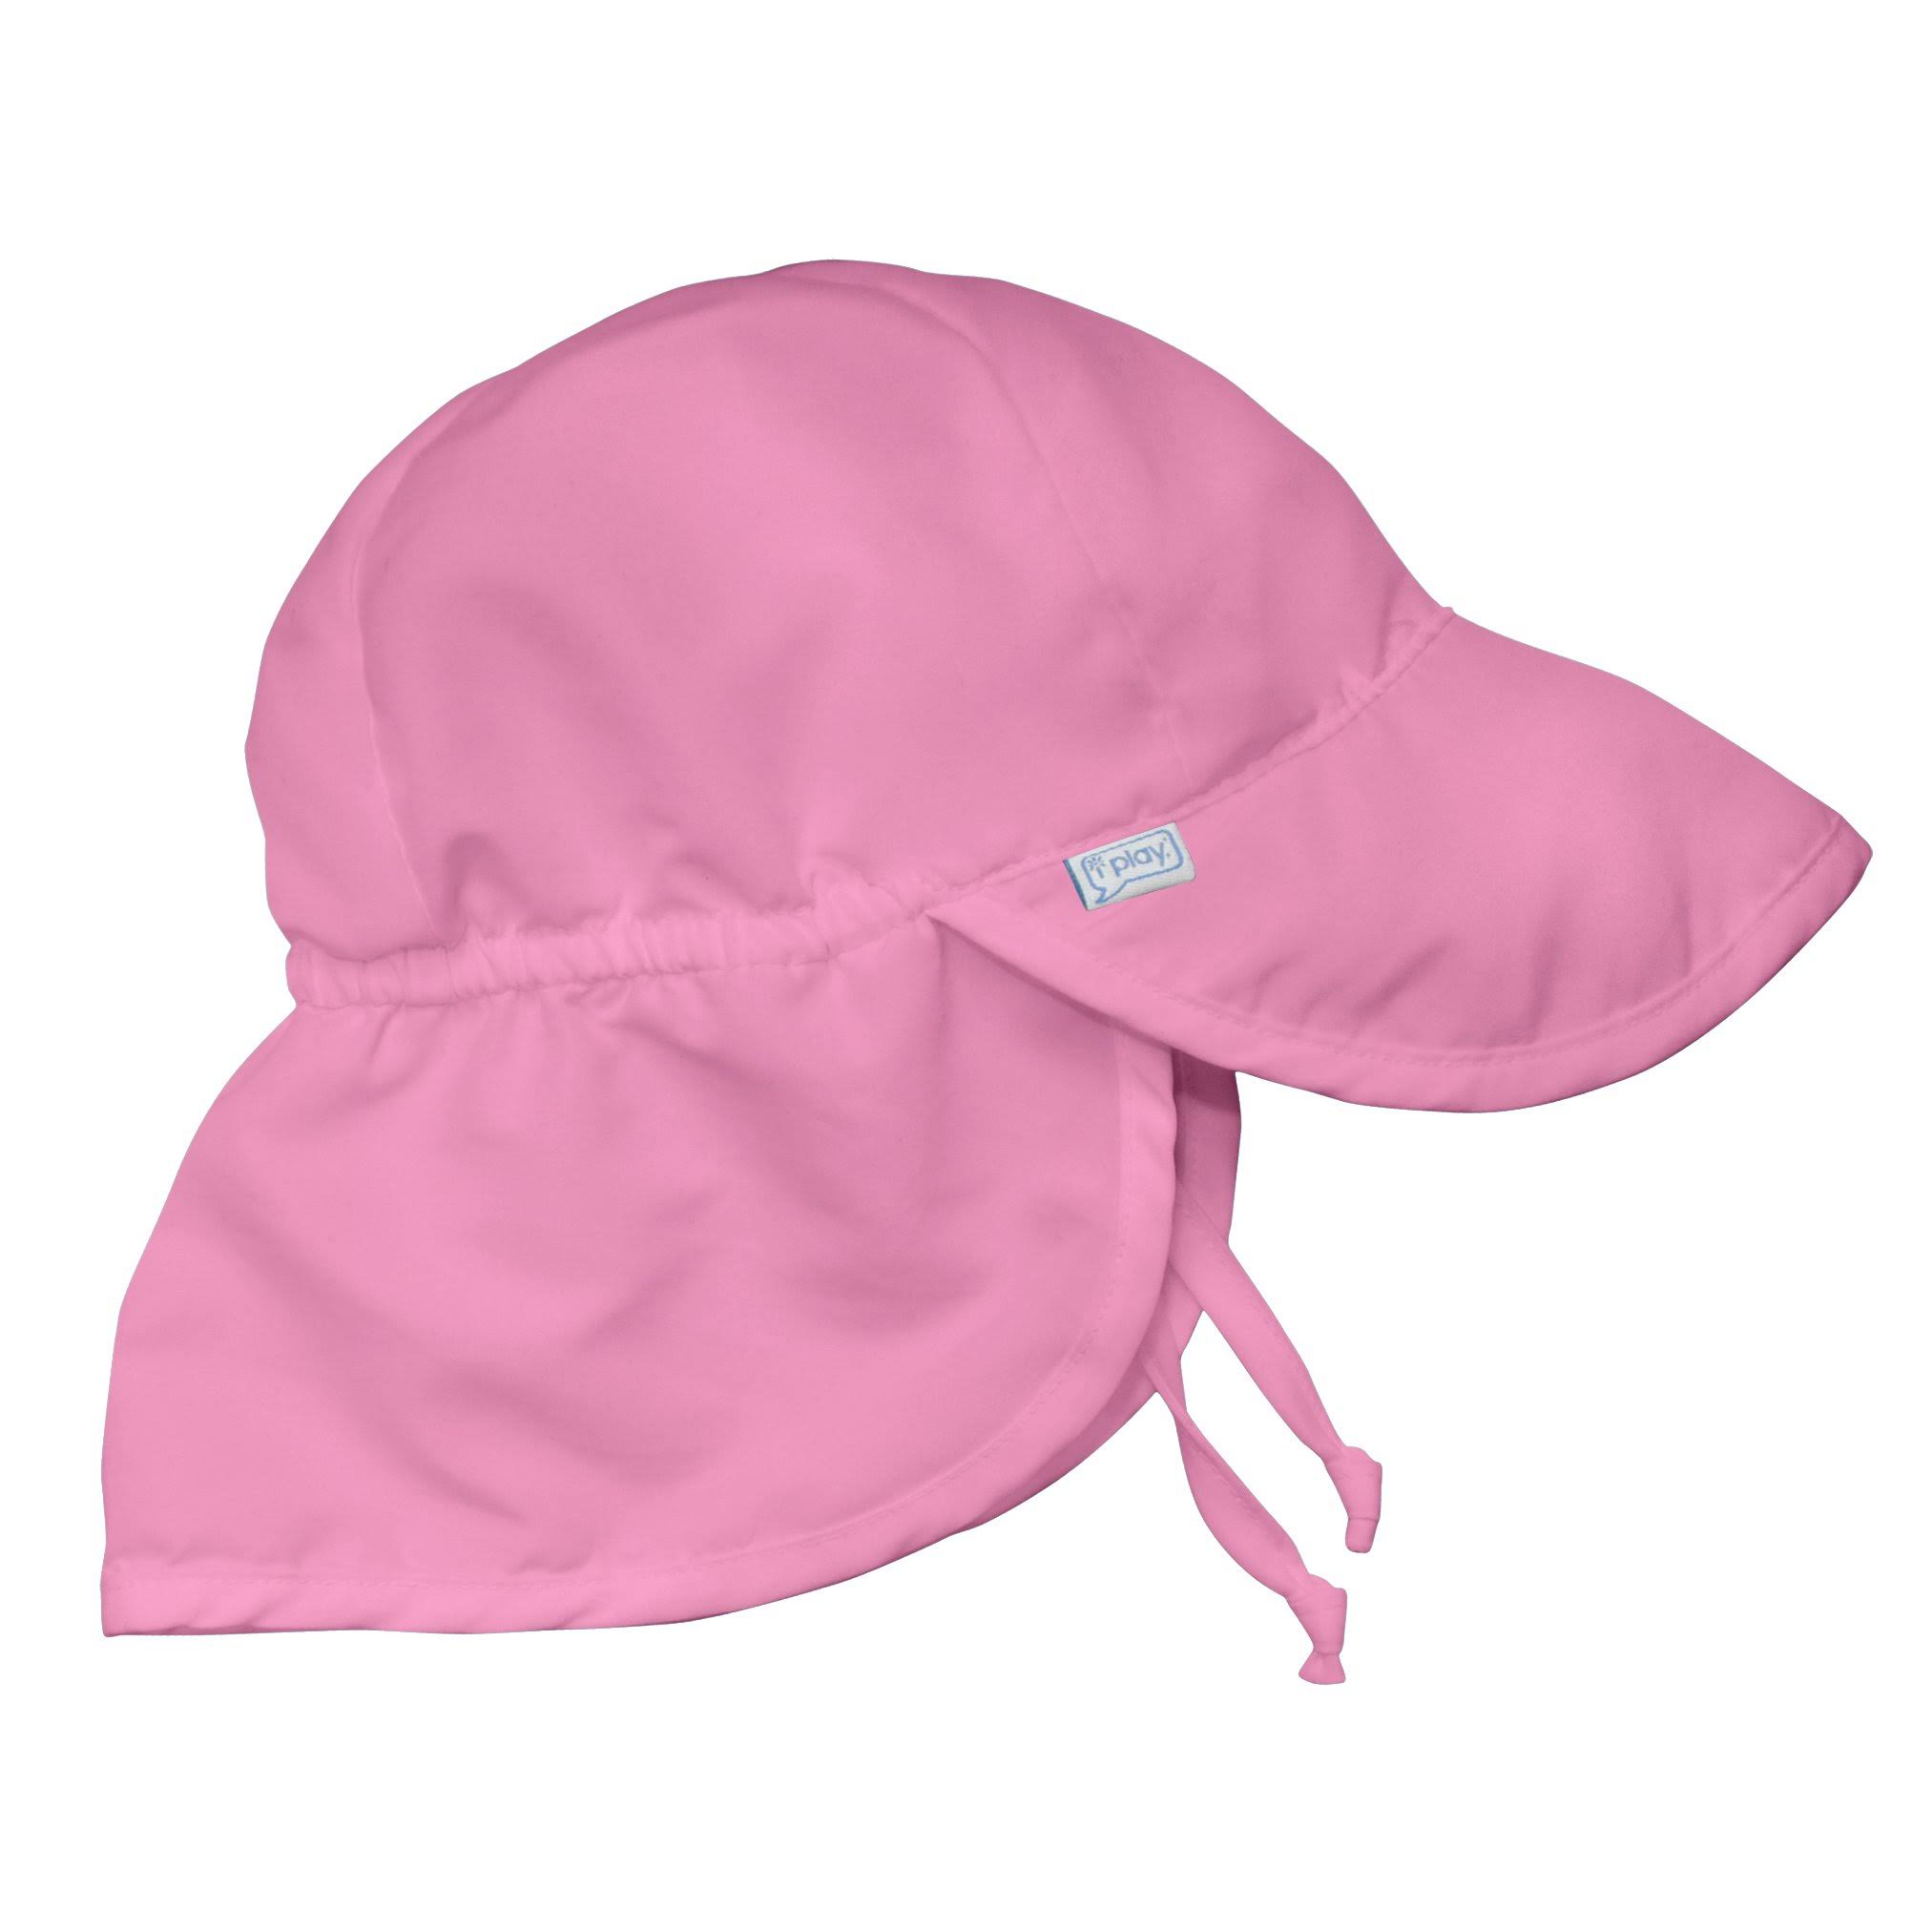 I Play Baby Flap Sun Protection Swim Hat - Light Pink , 9 to 18 Months